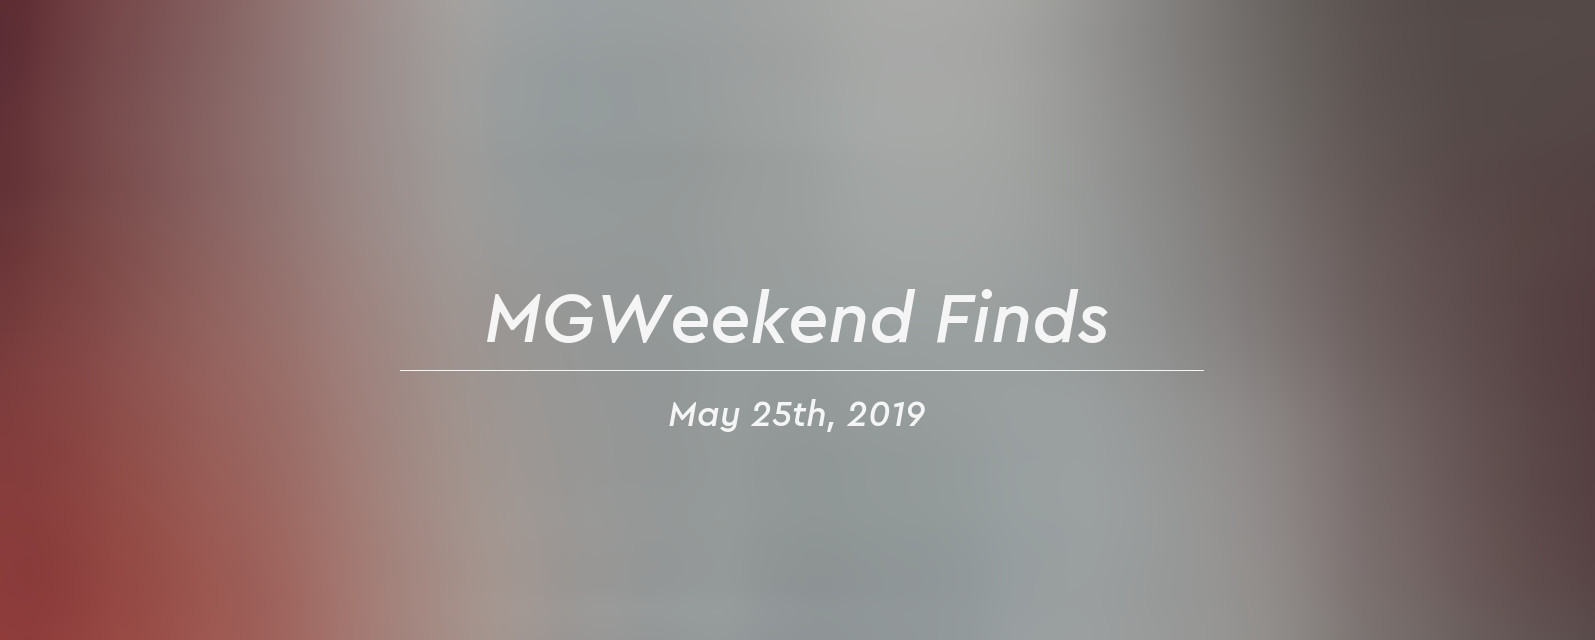 MGWeekend Finds May 25th, 2019 Header